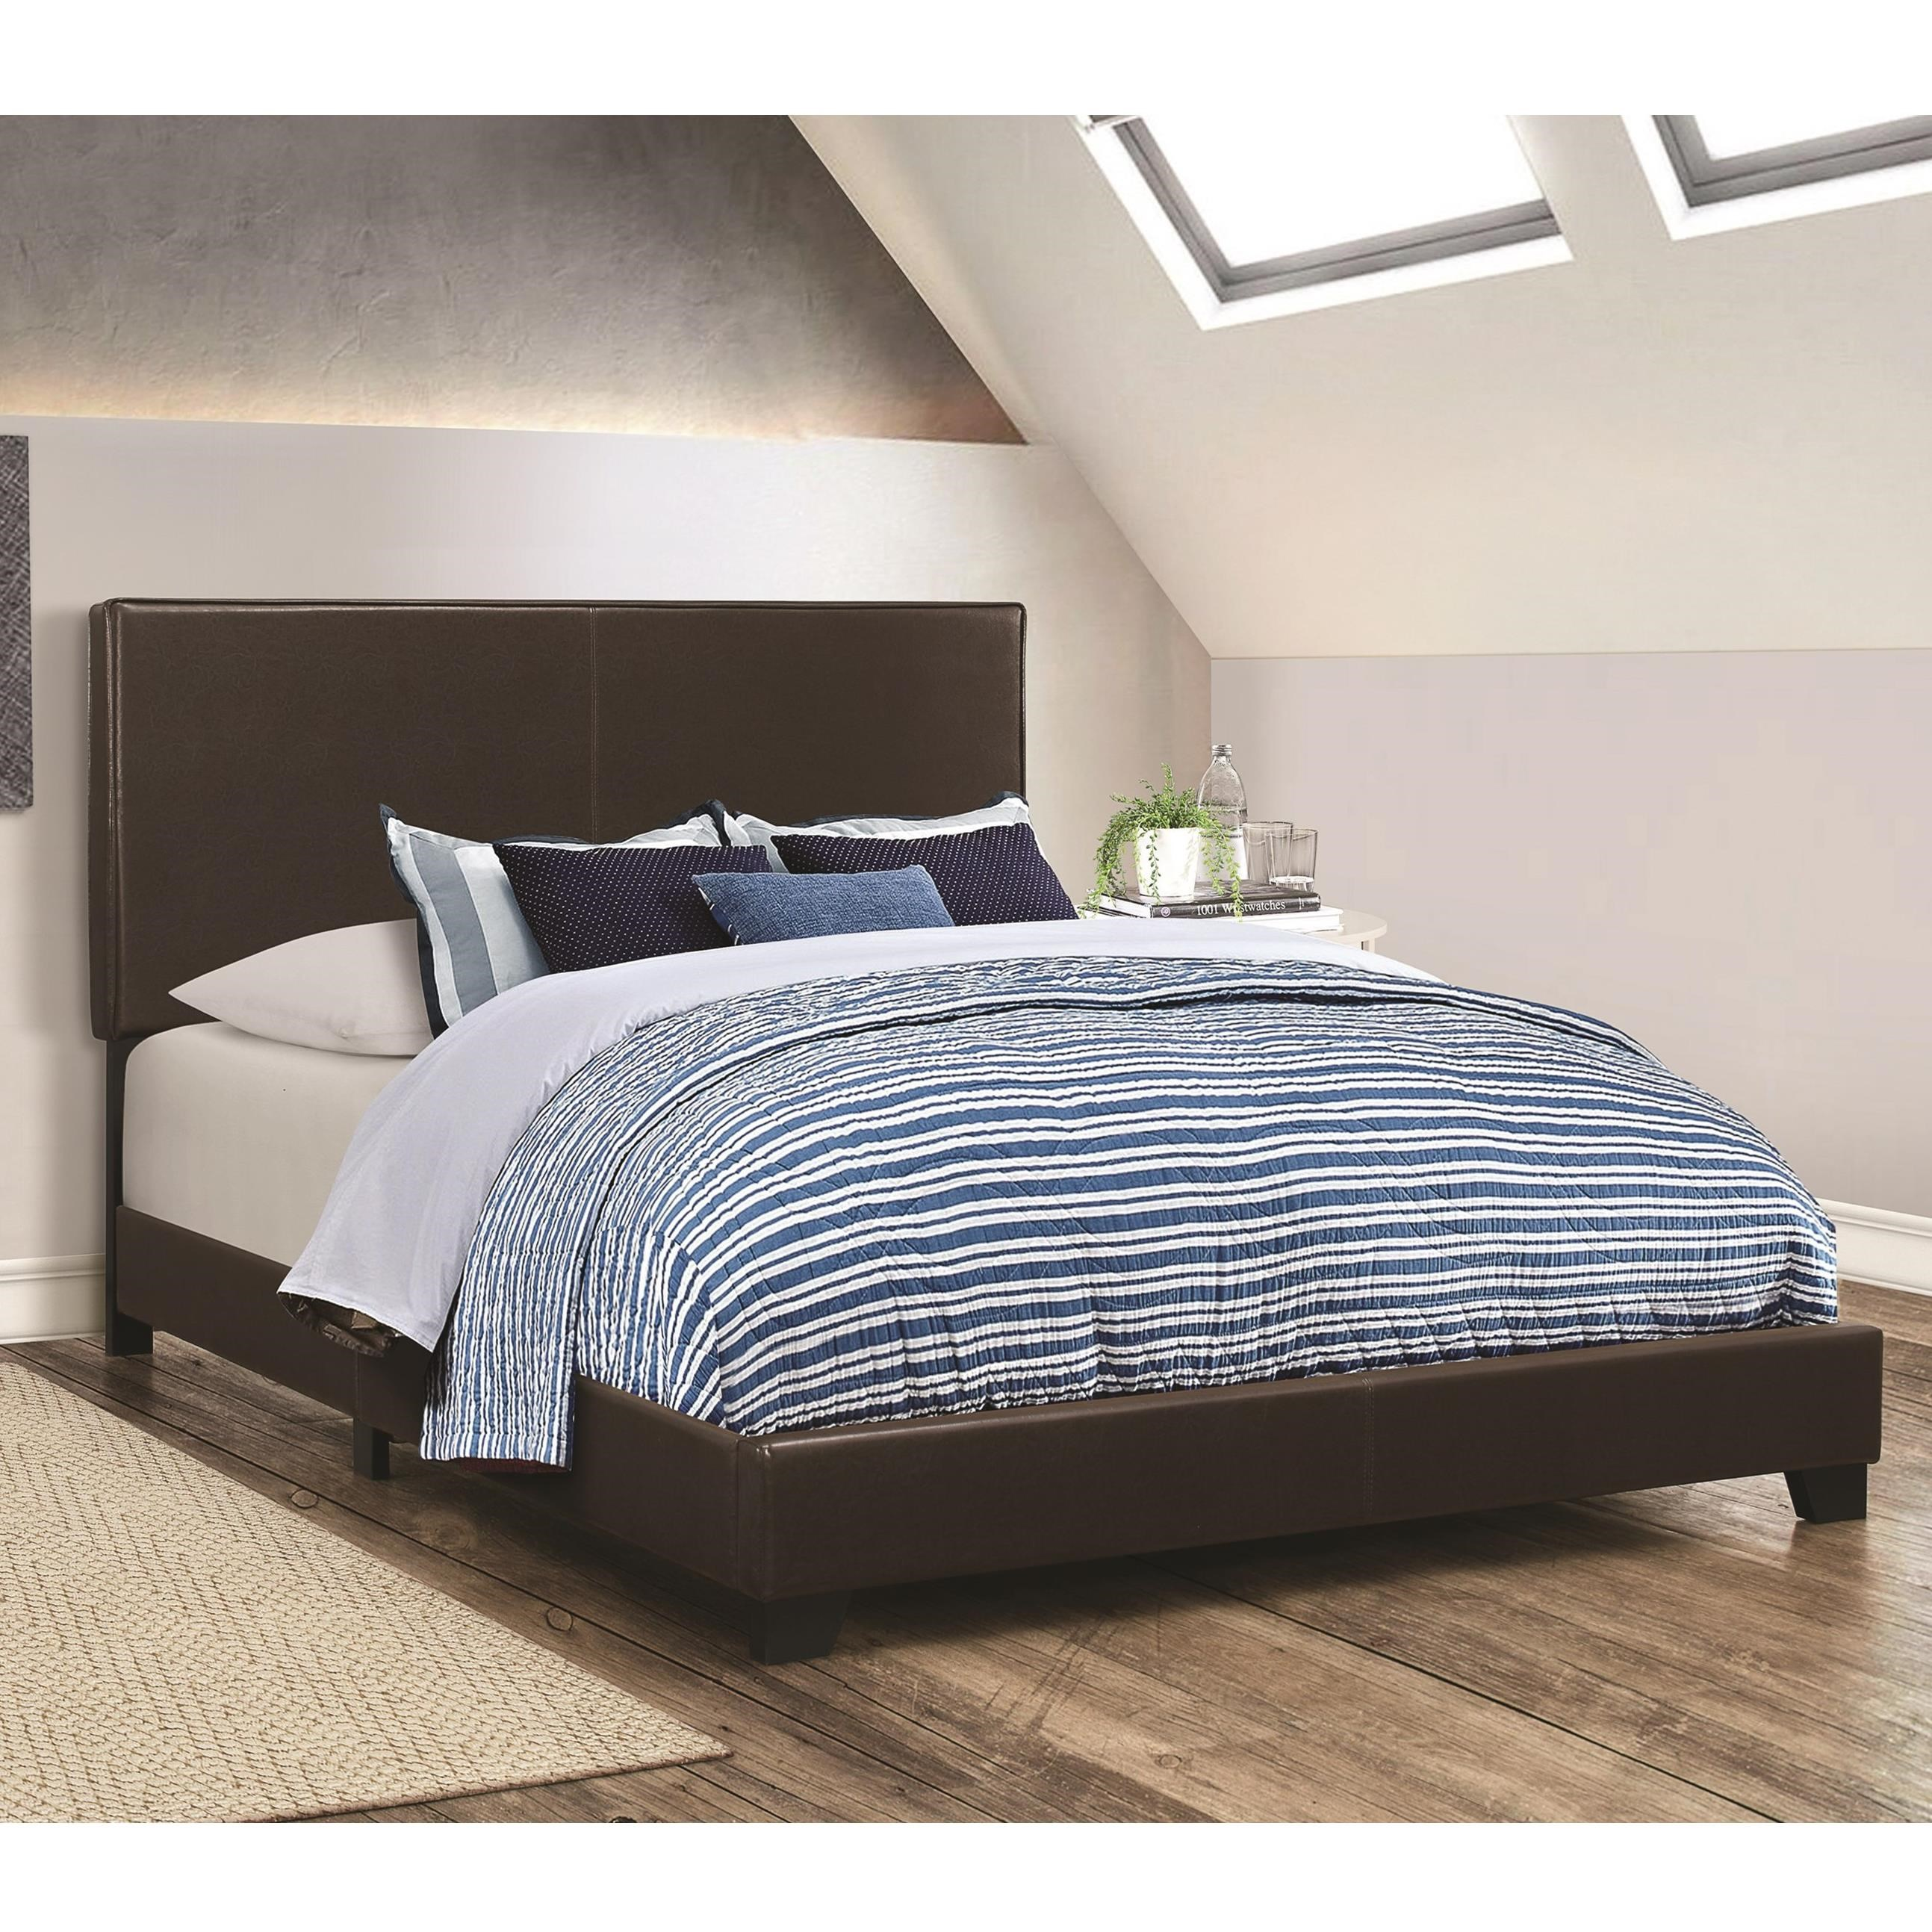 Coaster Dorian Brown California King Bed - Item Number: 300762KW